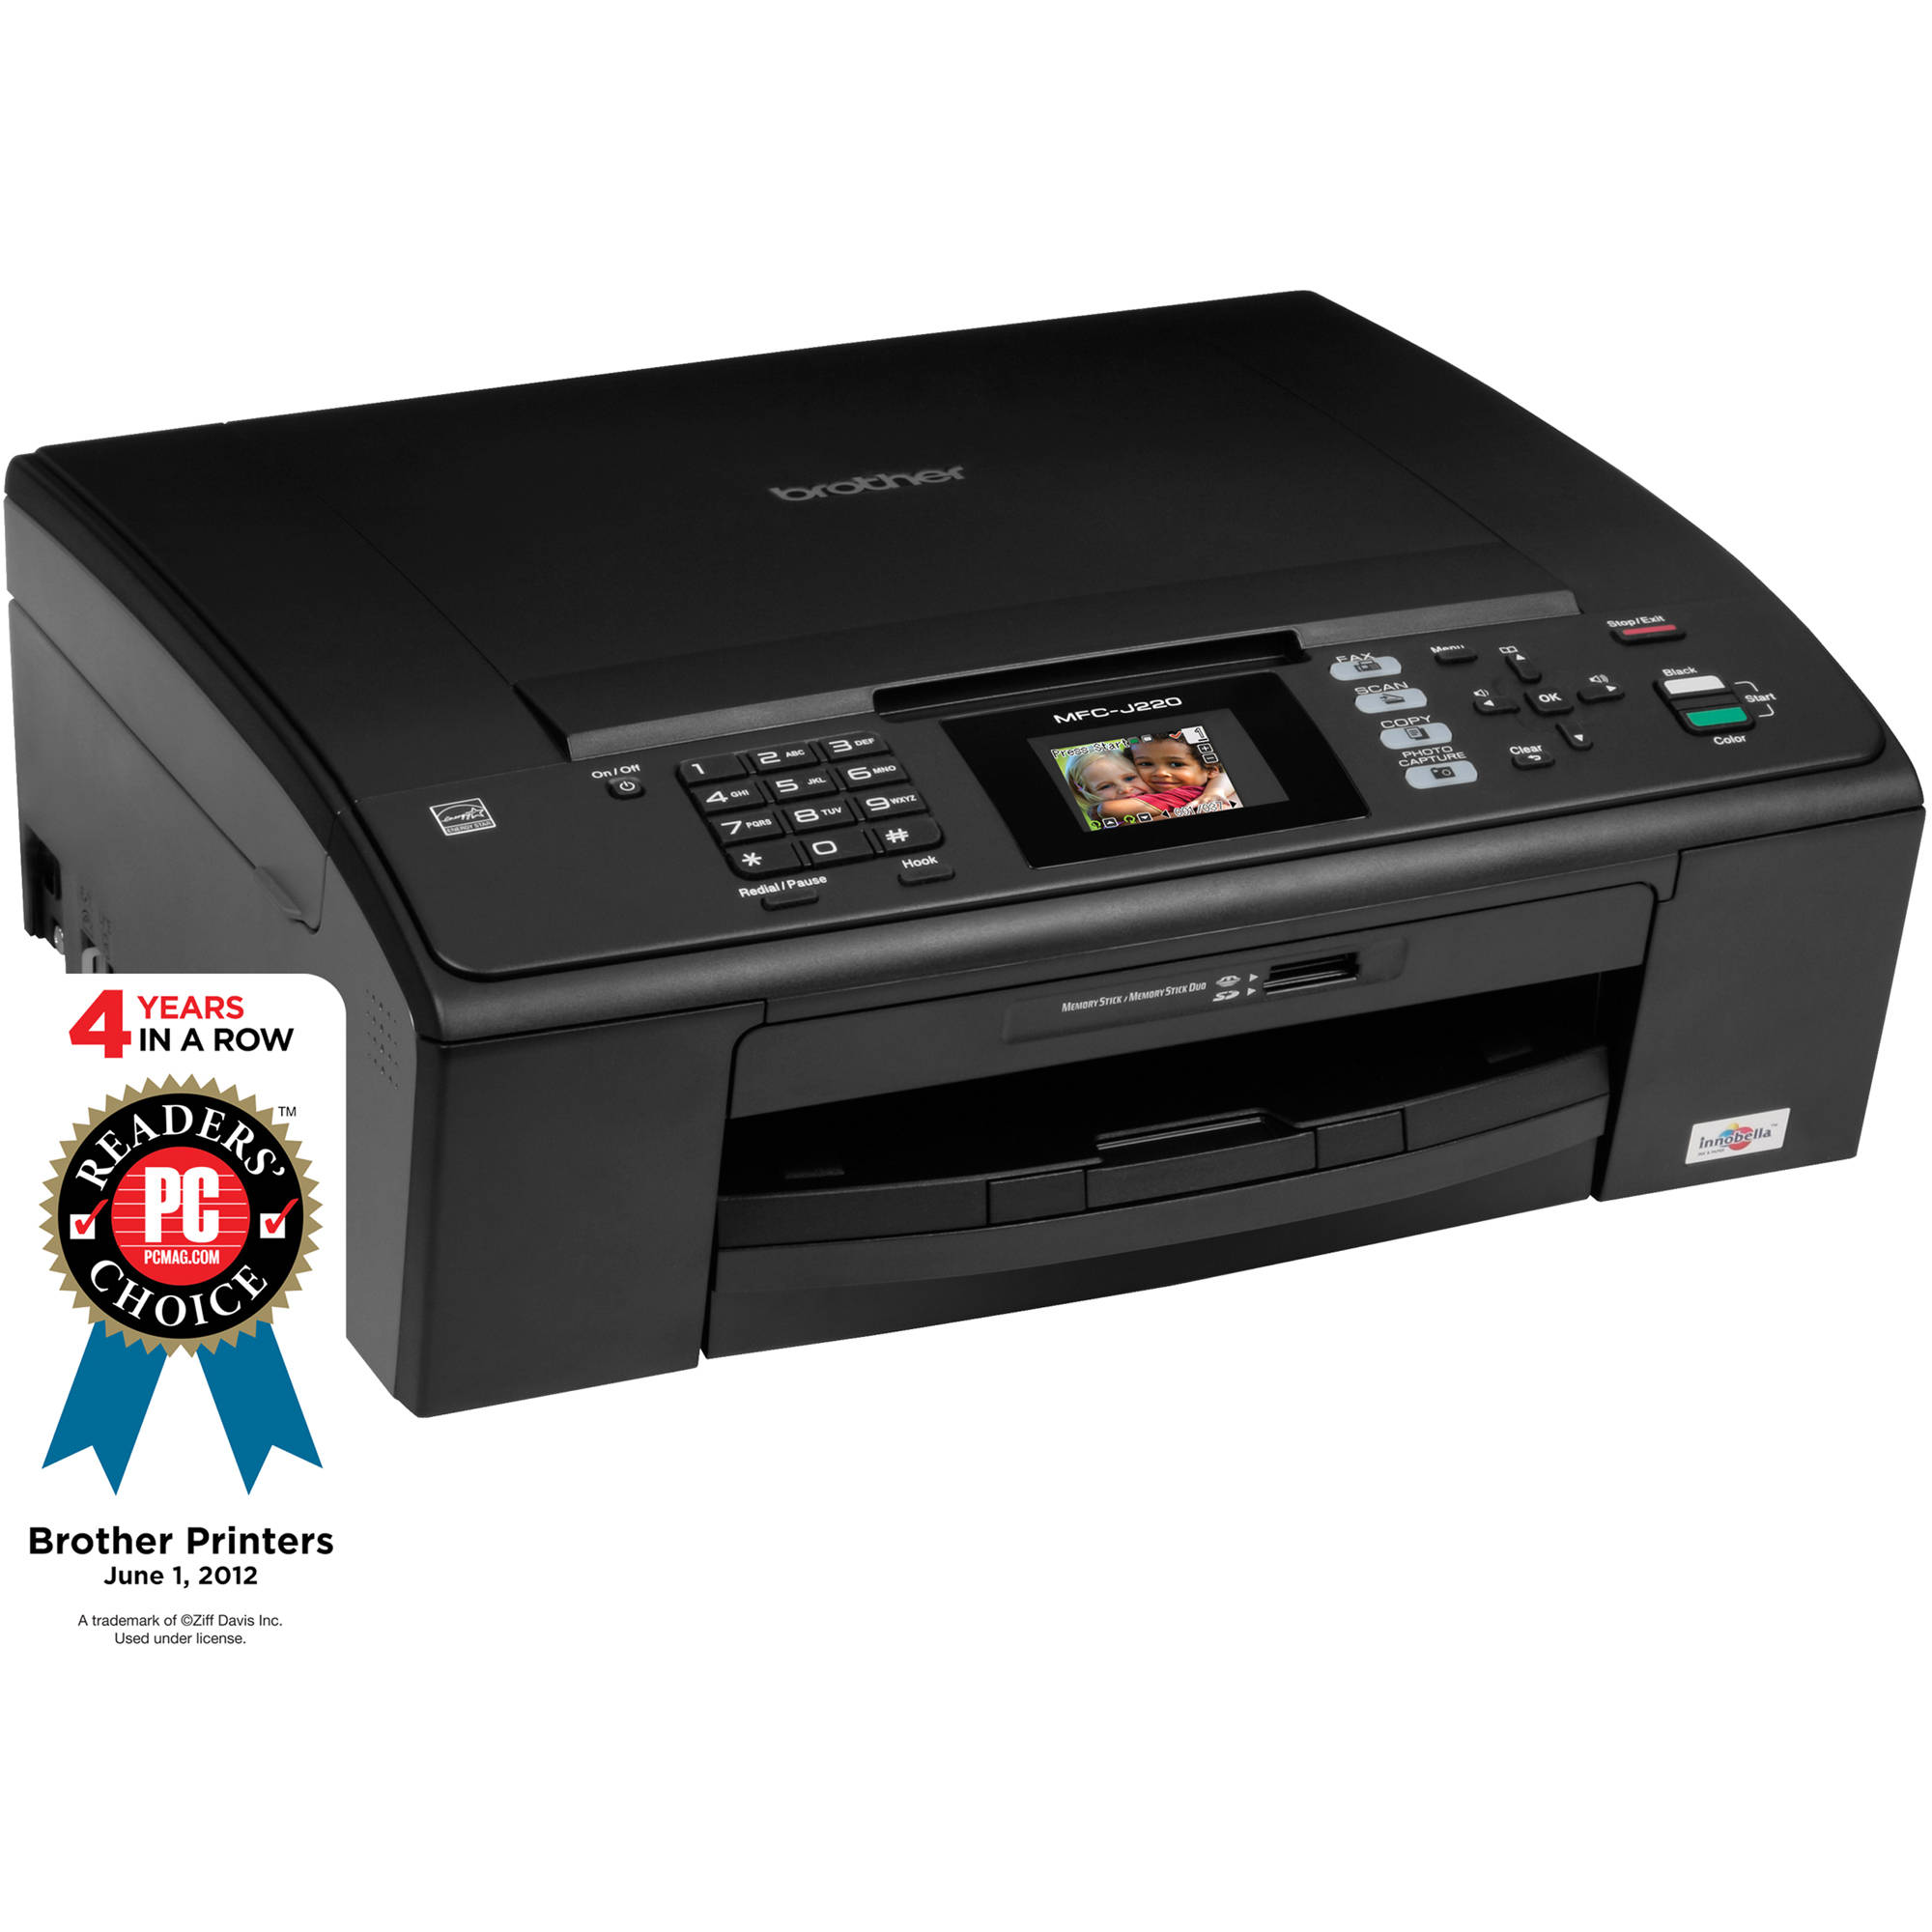 Brother MFC-J220 Color All-in-One Inkjet Printer